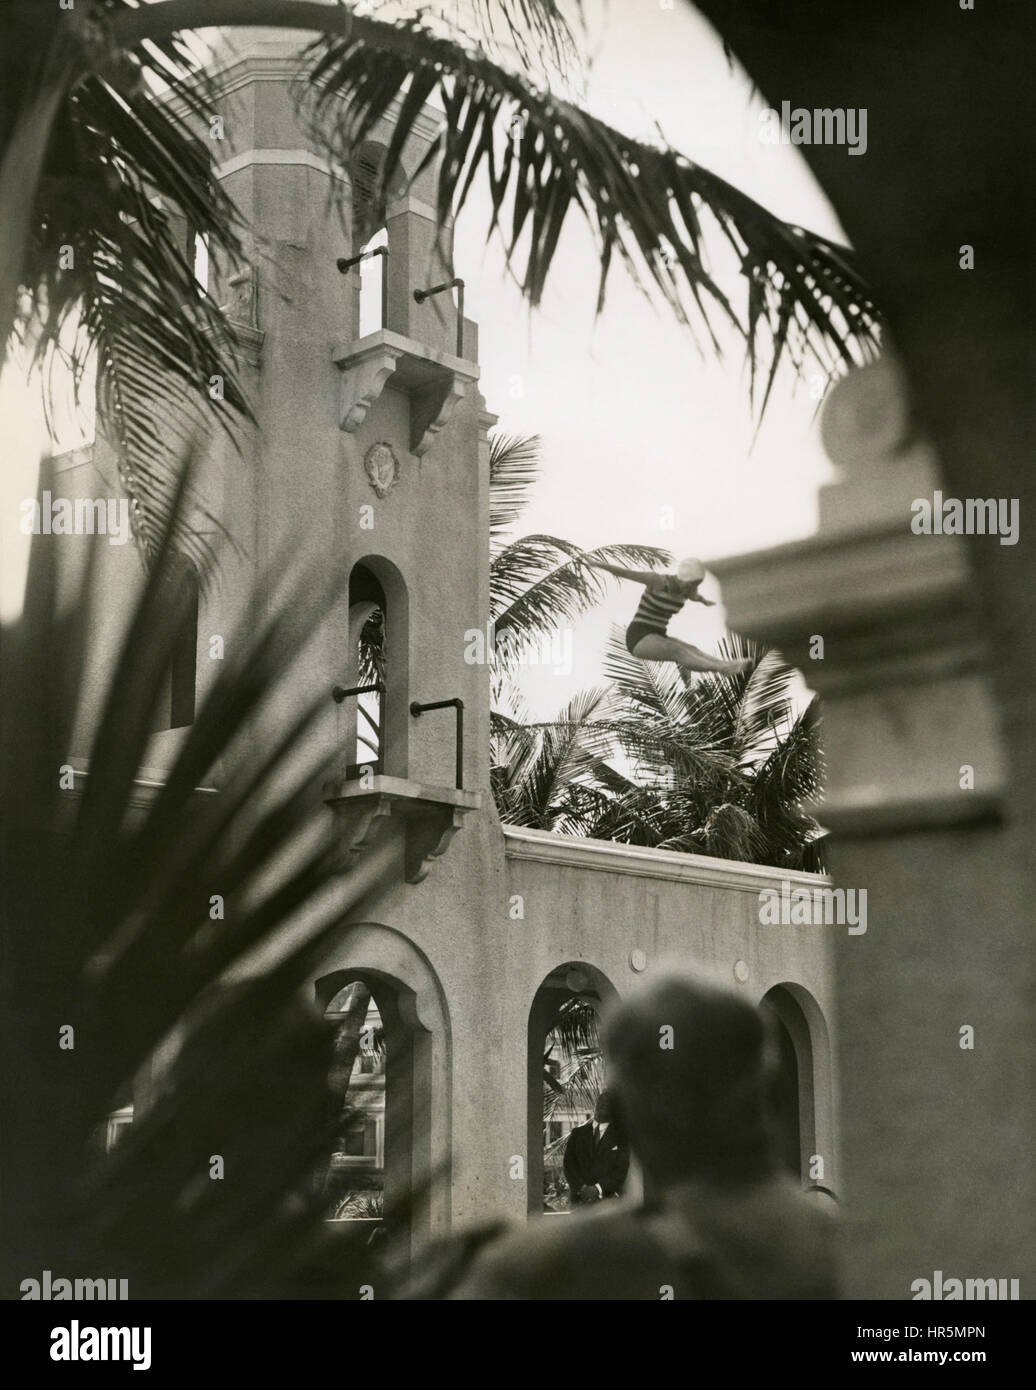 Olympic diving champion, Helen Meany, diving from the high-dive springboard into the pool at The Breakers resort - Stock Image